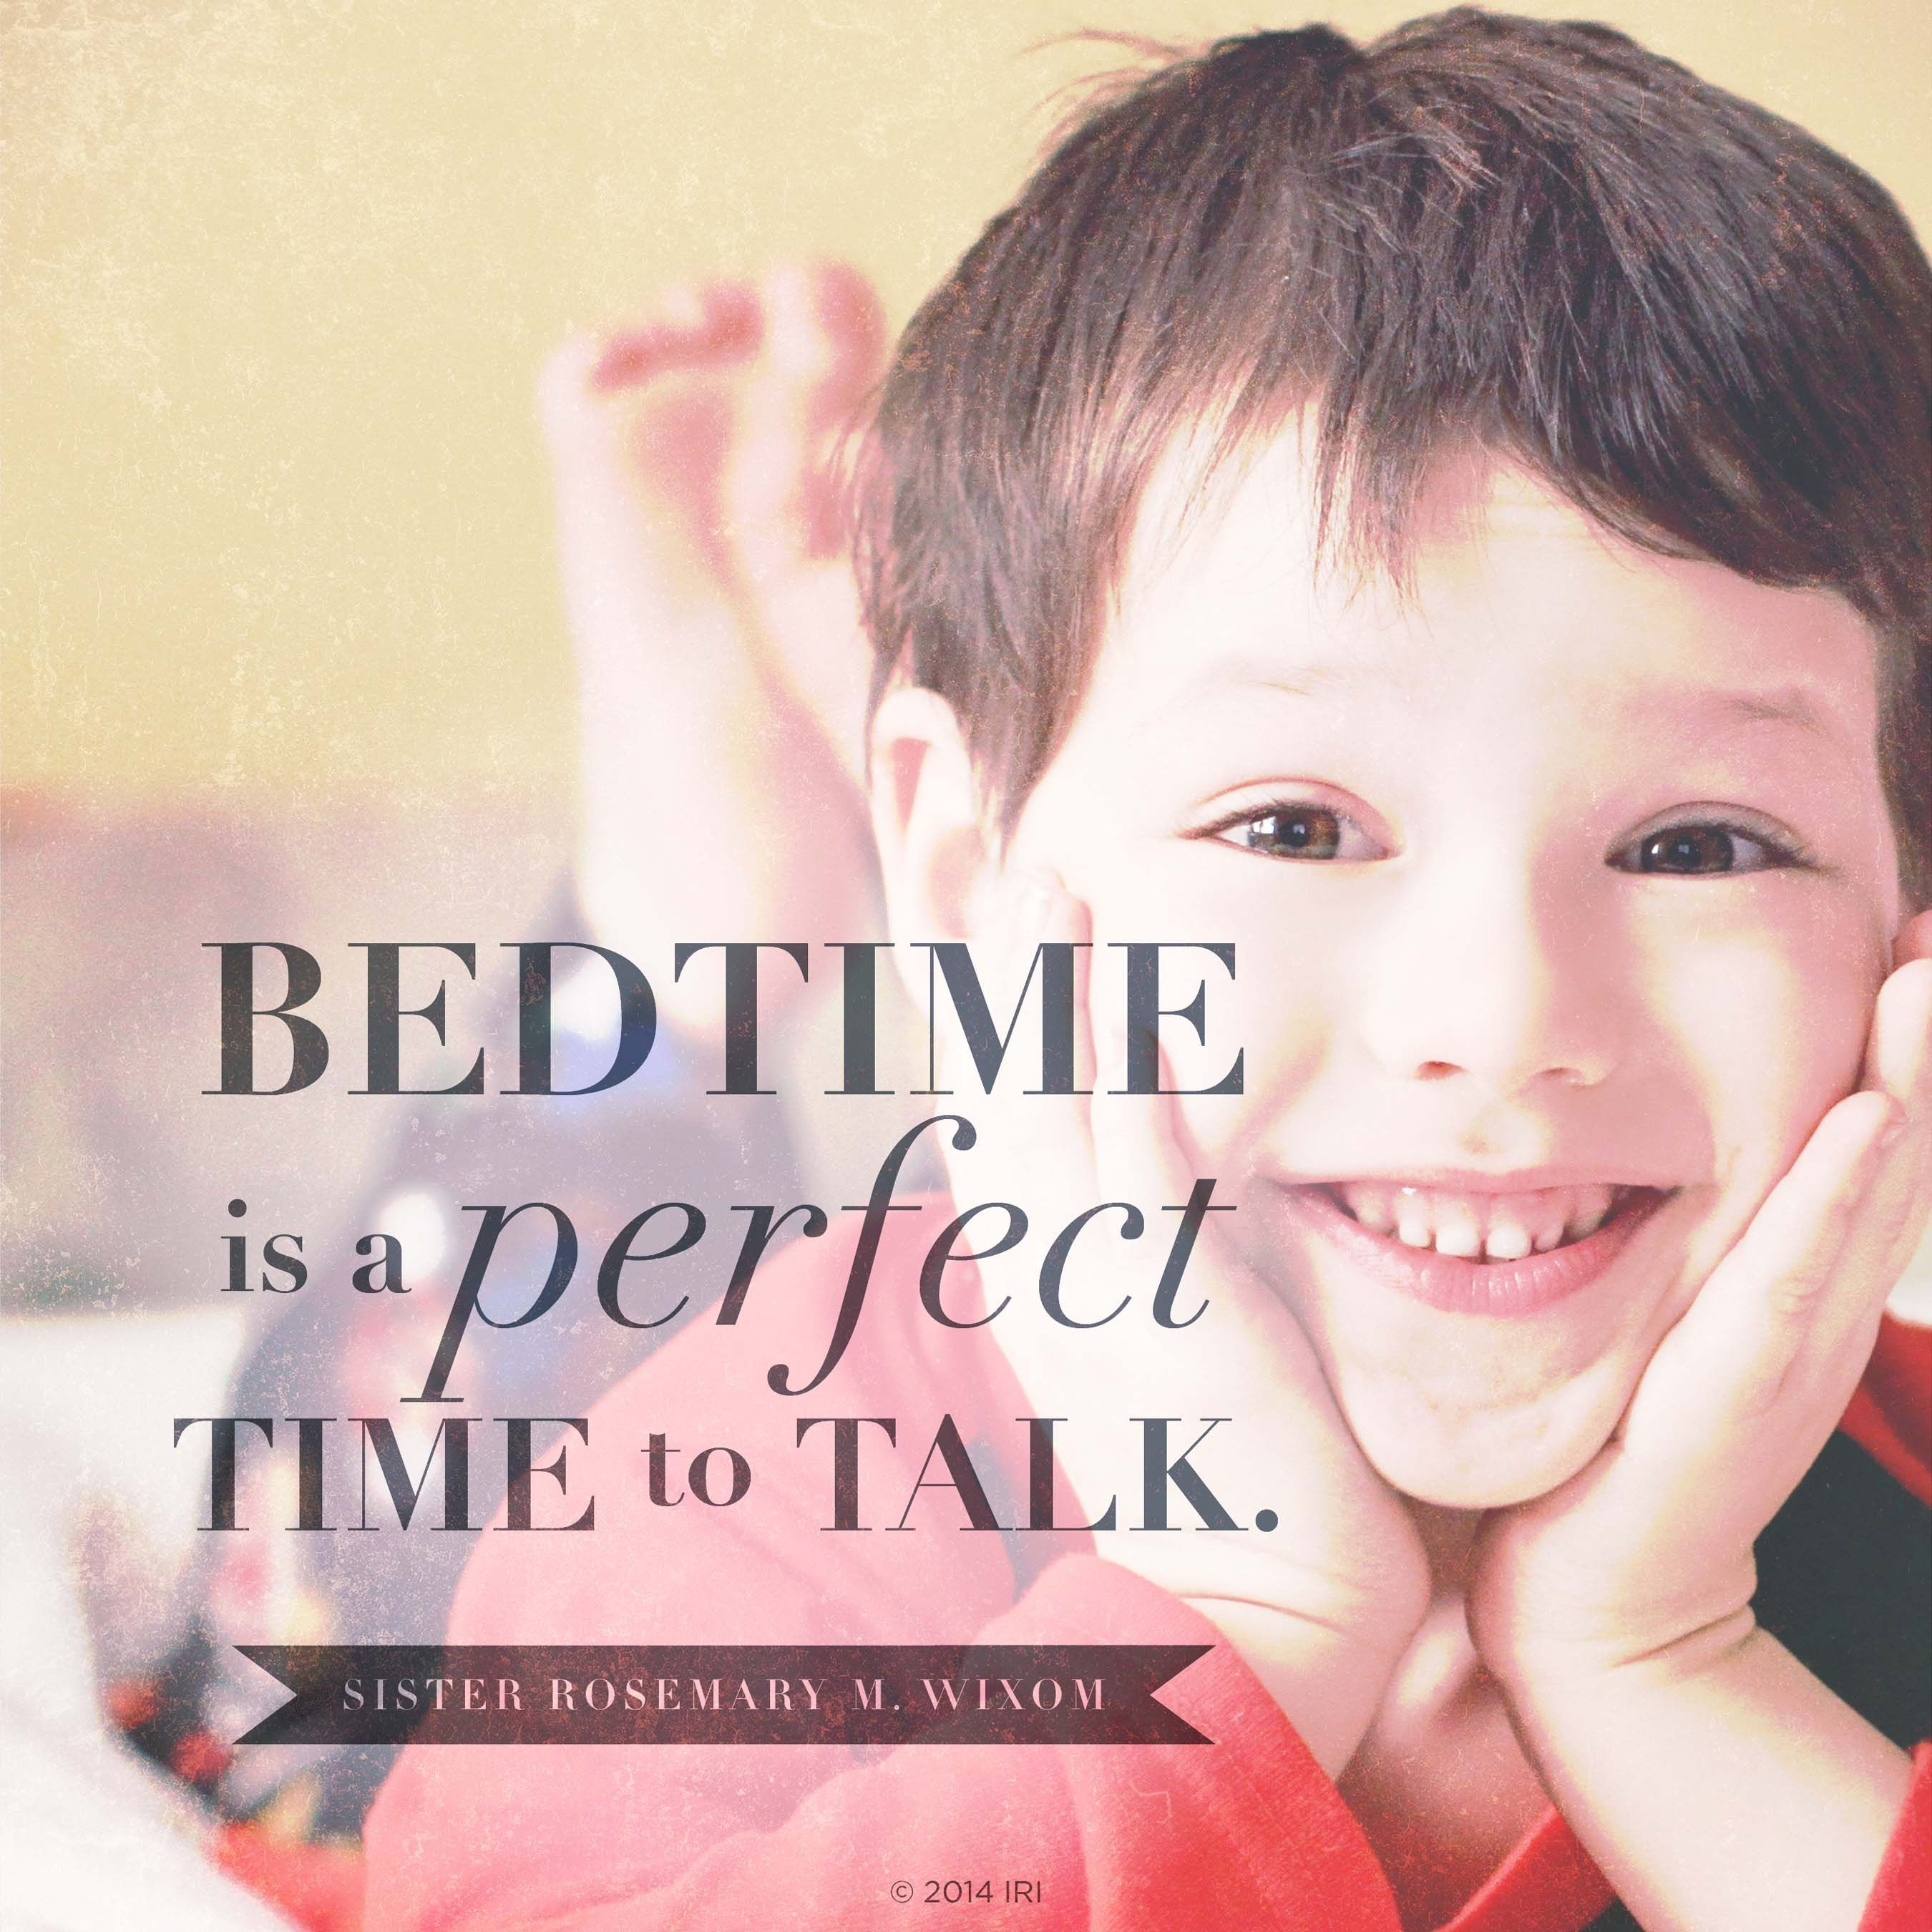 """""""Bedtime is a perfect time to talk.""""—Sister Rosemary M. Wixom, """"Taking Time to Talk and Listen"""""""